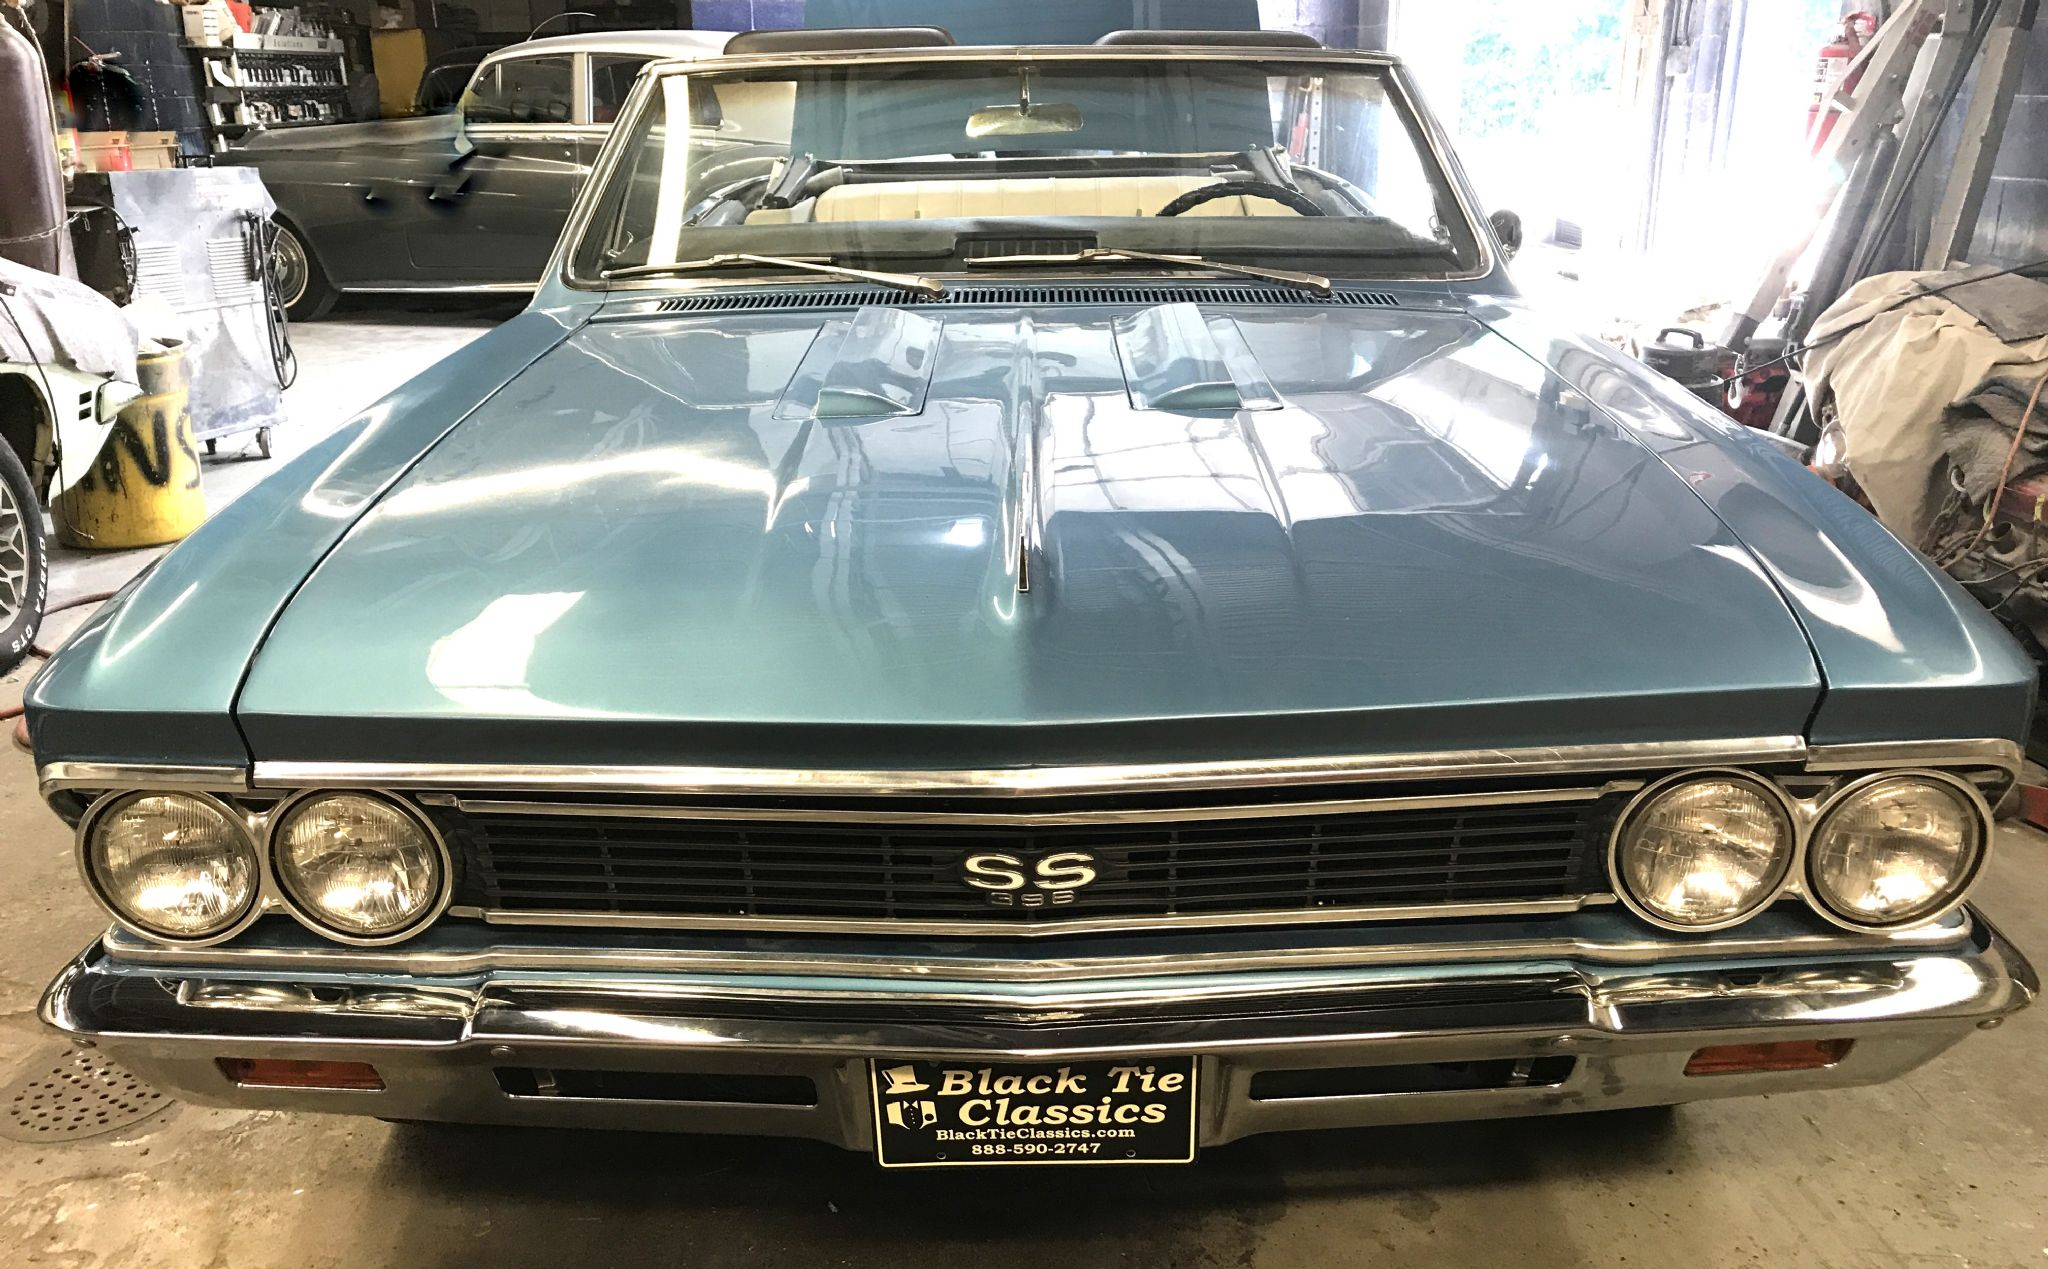 1966 Chevrolet Chevelle Ss Trim 396 For Sale Chevy Thumbnail 1